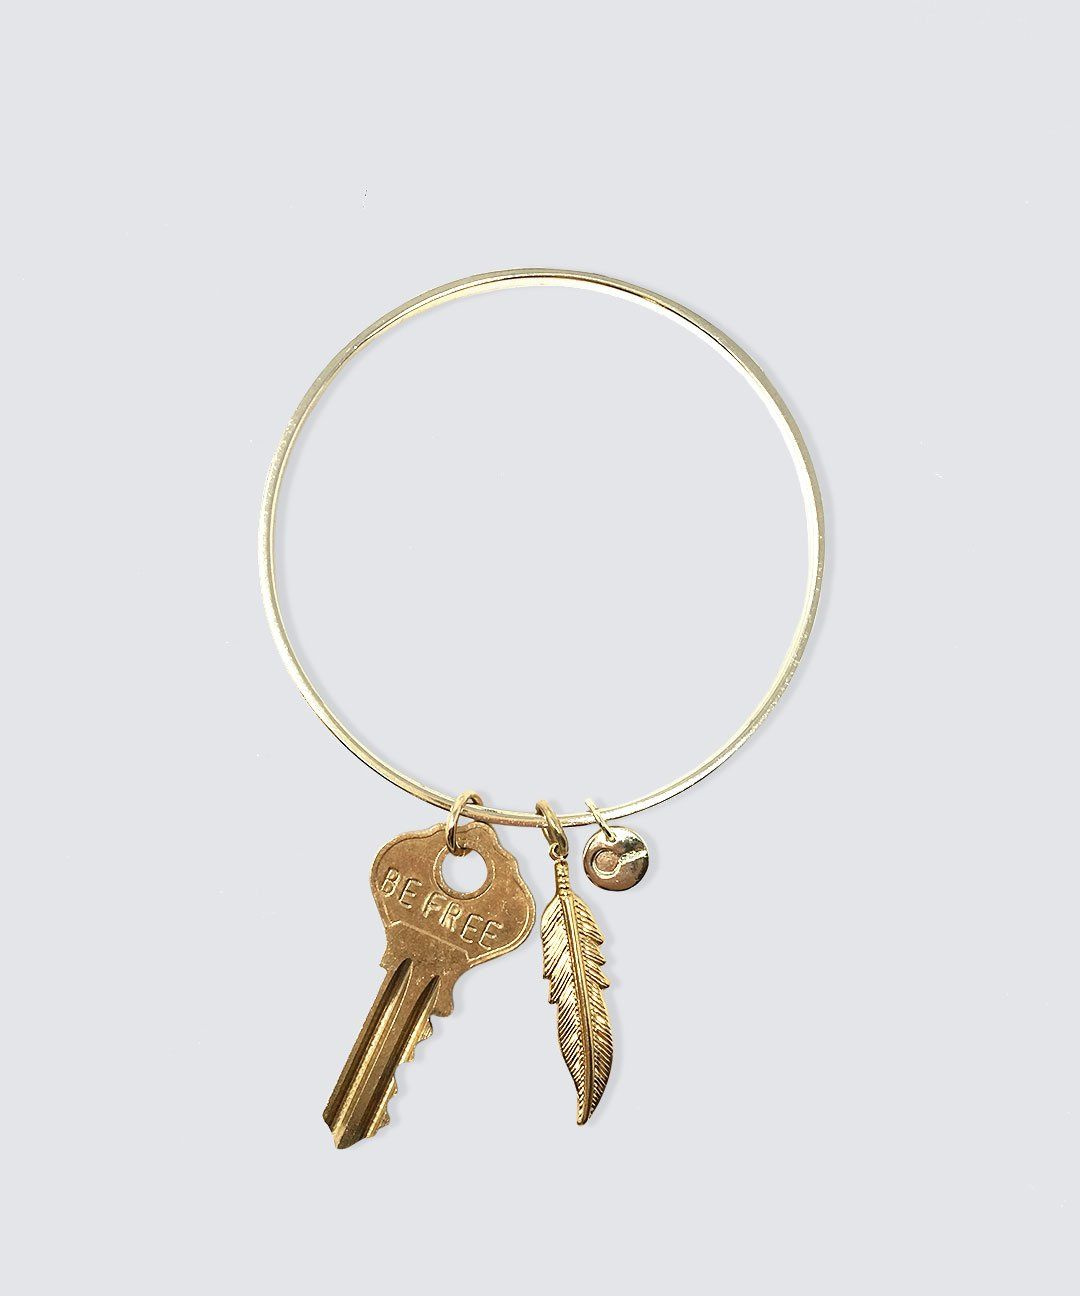 Dainty Key and Feather Bangle Bracelet Bracelets The Giving Keys Be Free Gold